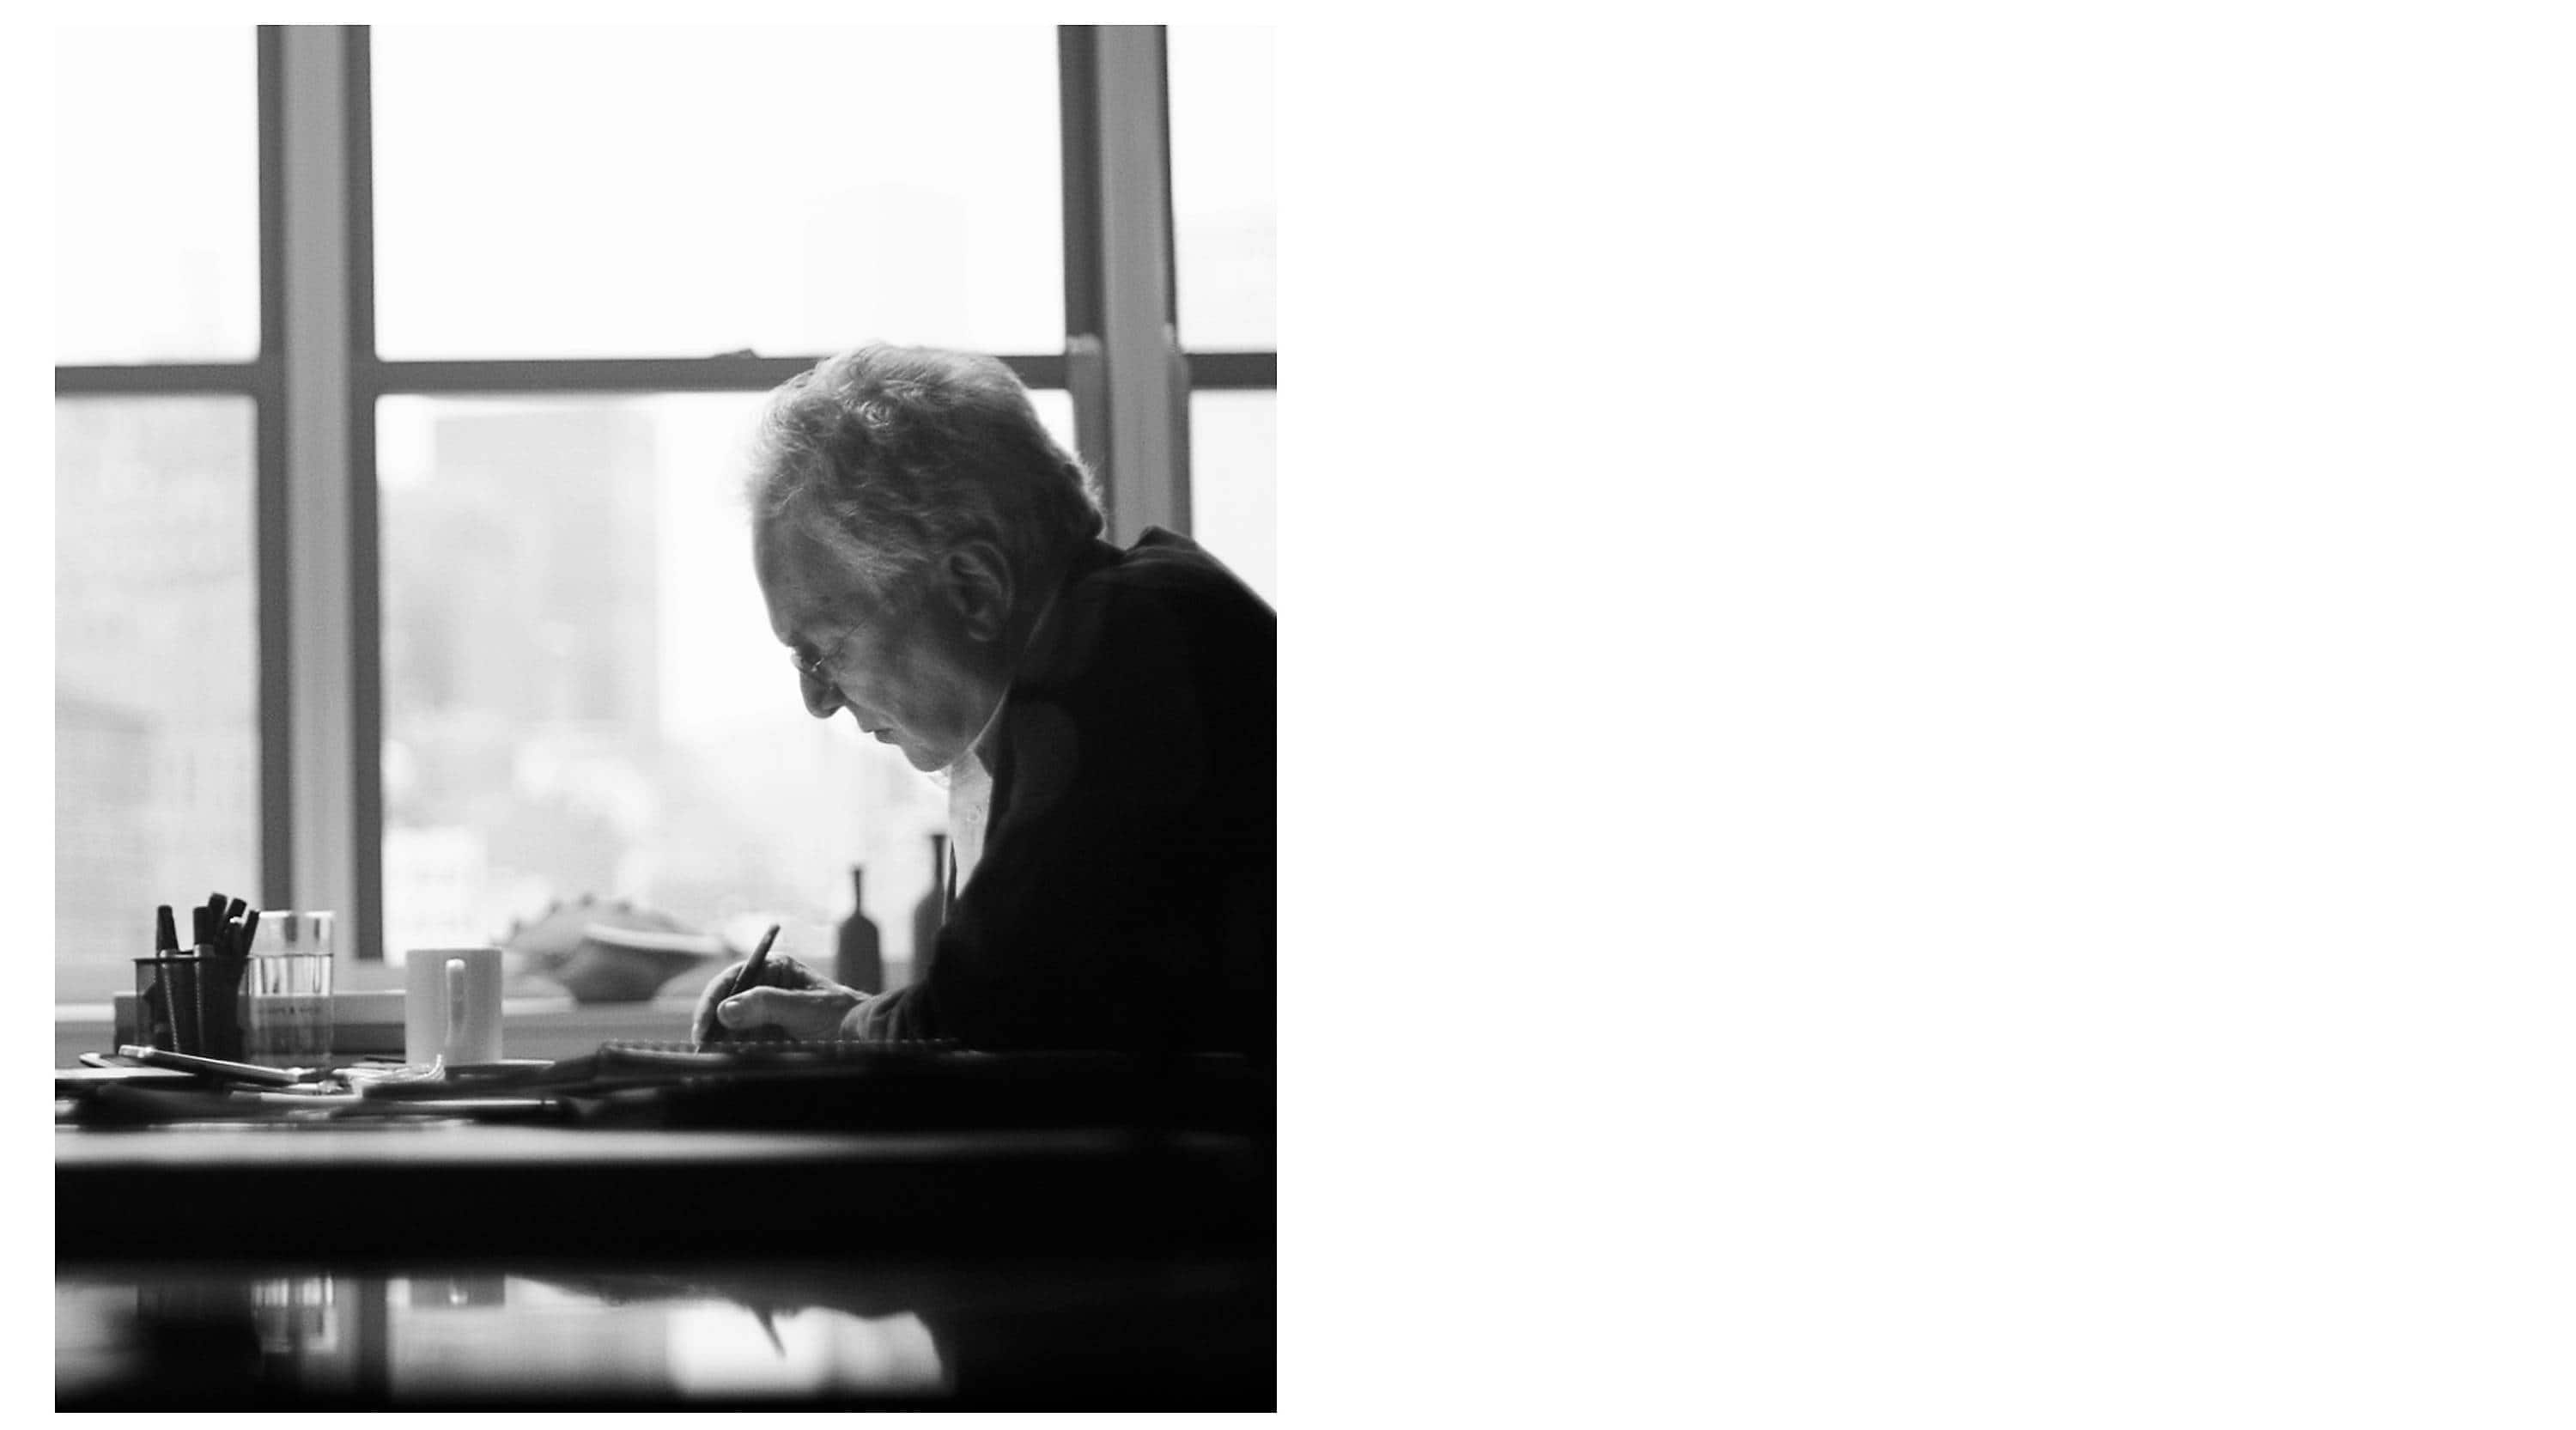 A black-and-white photo shows a side profile of David Yurman as he sits at a desk in his company's lower Manhattan offices sketching in a notebook in front of a window lit by daylight.